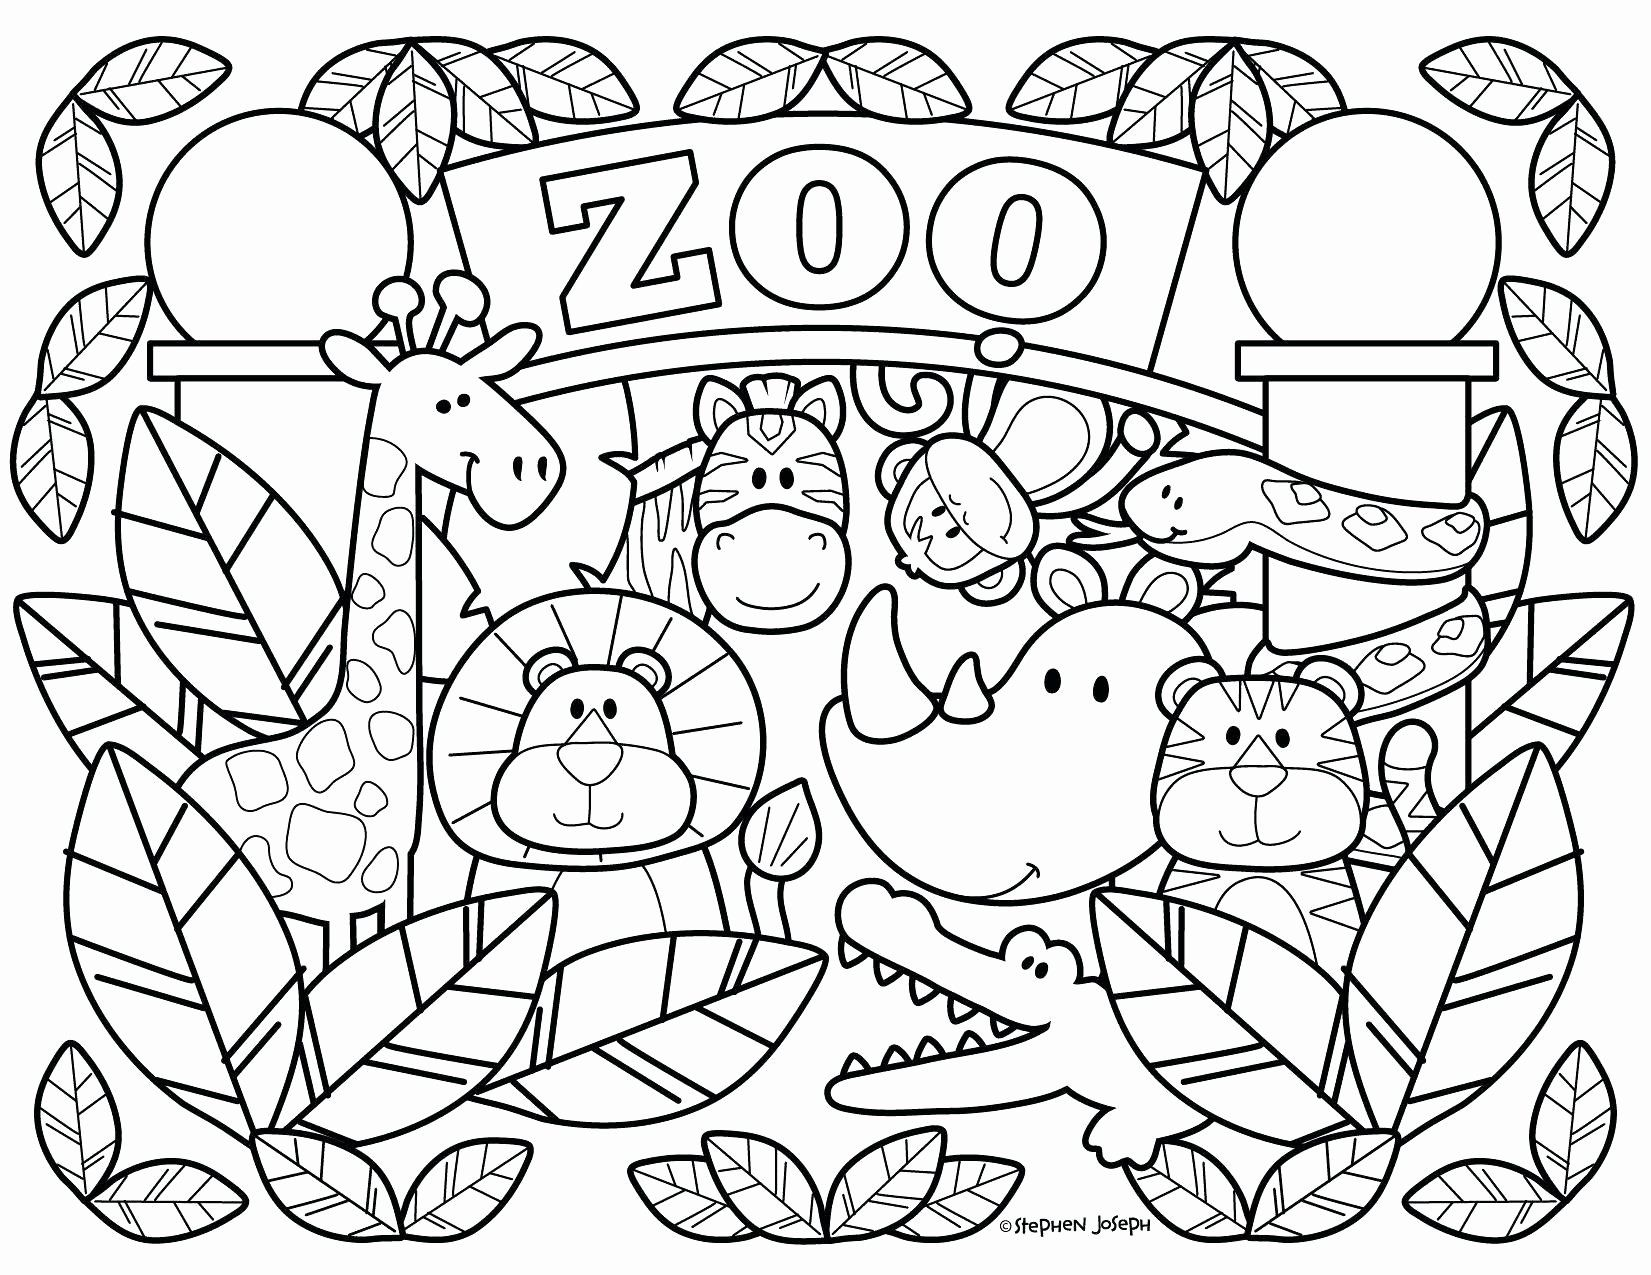 Coloring Pages Zoo Animals Preschool Inspirational Z Is For Zoo Coloring Page Allurep Zoo Coloring Pages Zoo Animal Coloring Pages Farm Animal Coloring Pages